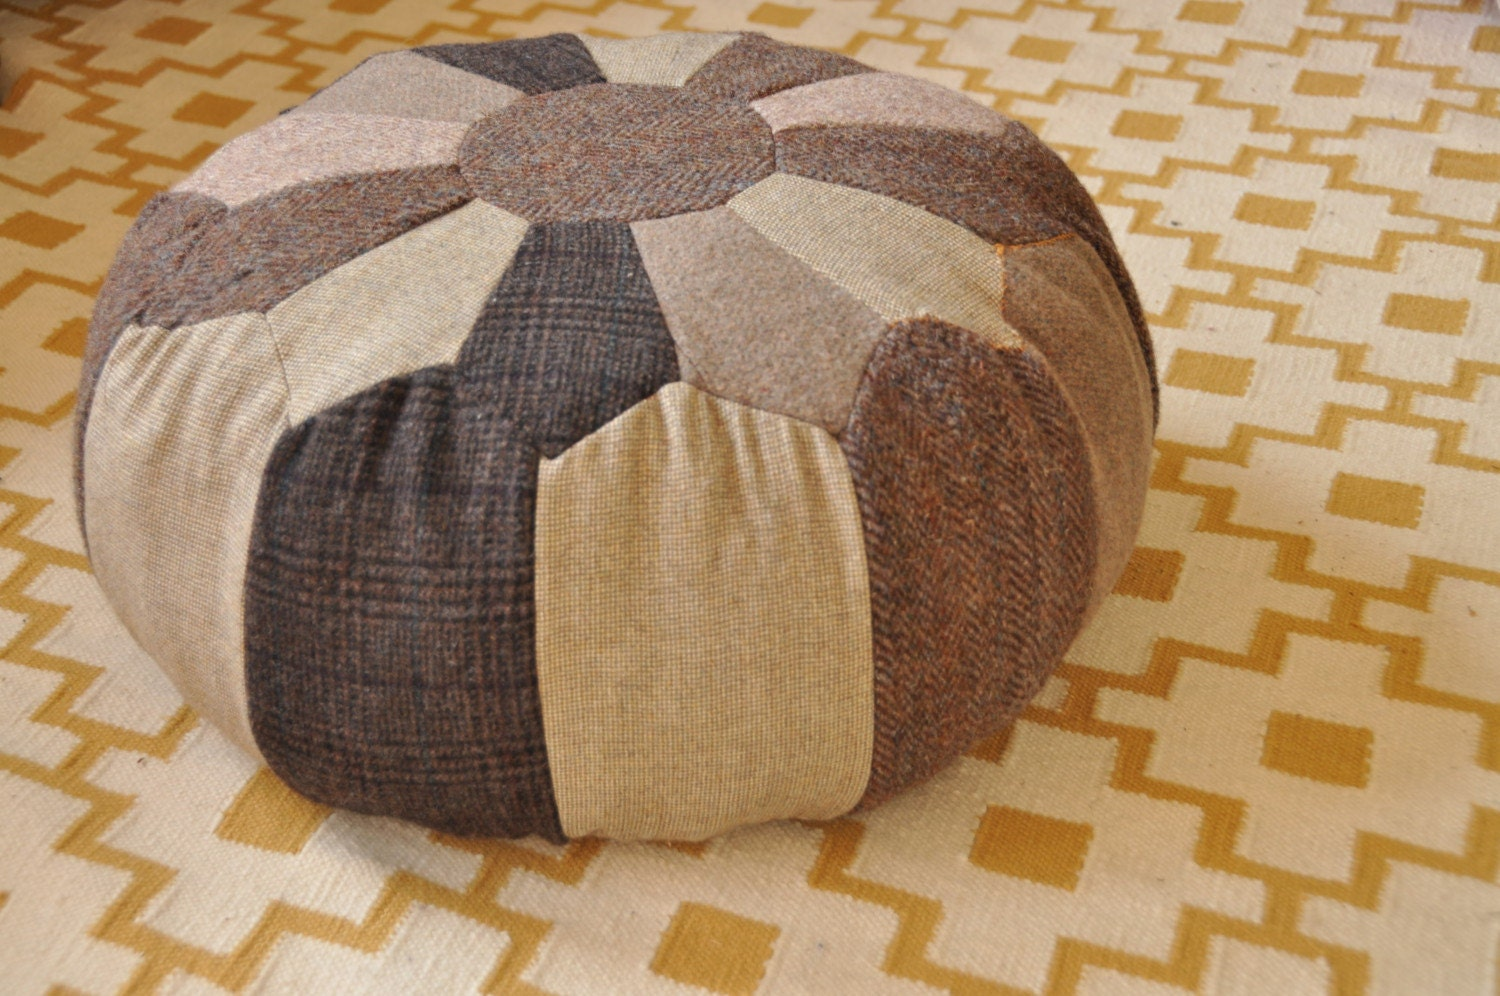 Giant Moroccan Floor Pillows : Moroccan style handmade pouf floor pillow by OldMadeNewOrg on Etsy